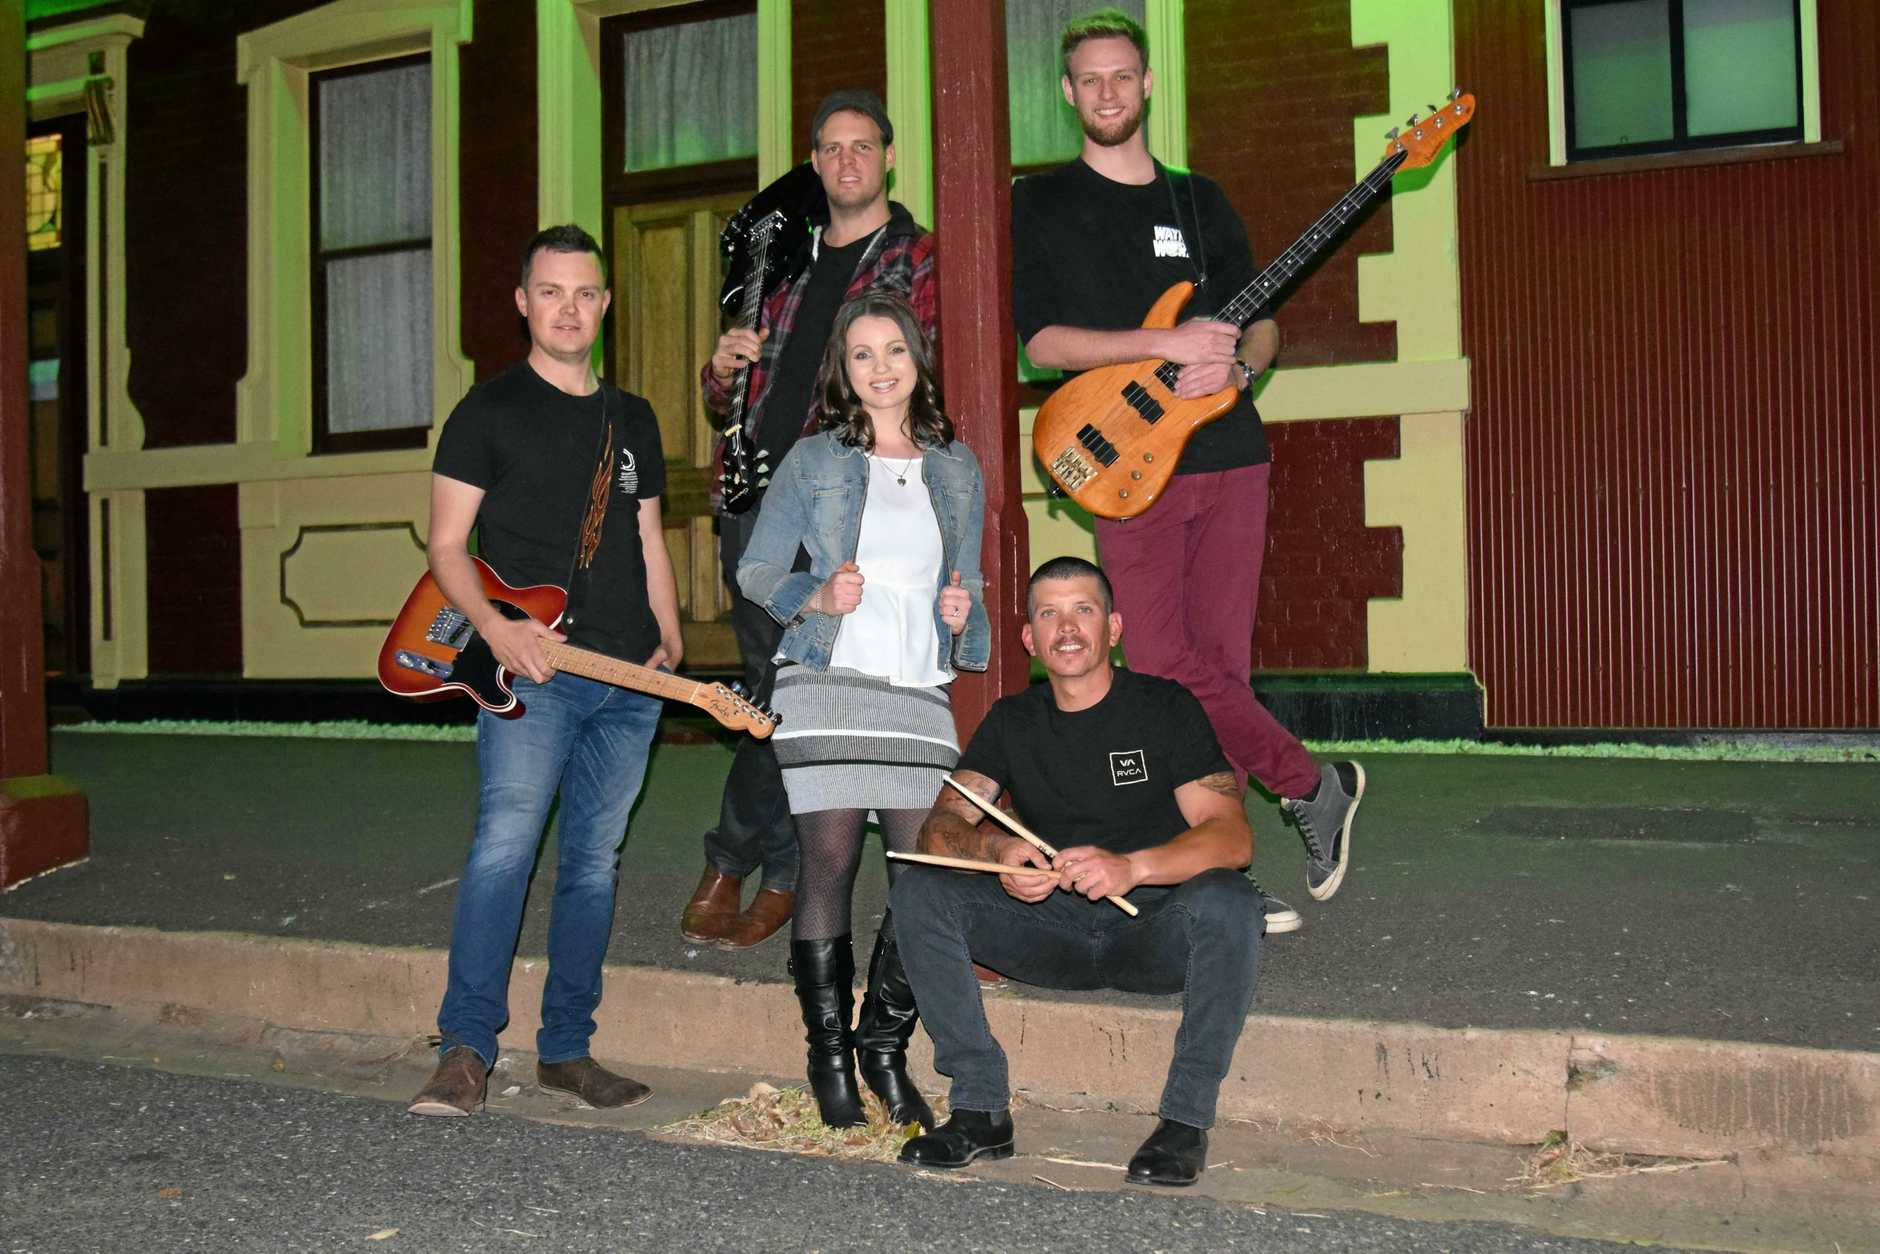 FRESH SOUNDS: Ash Moore (from left), Luke Costello, Elle Rudd, Josh Grant and Tim Alley from new band SideTracked.